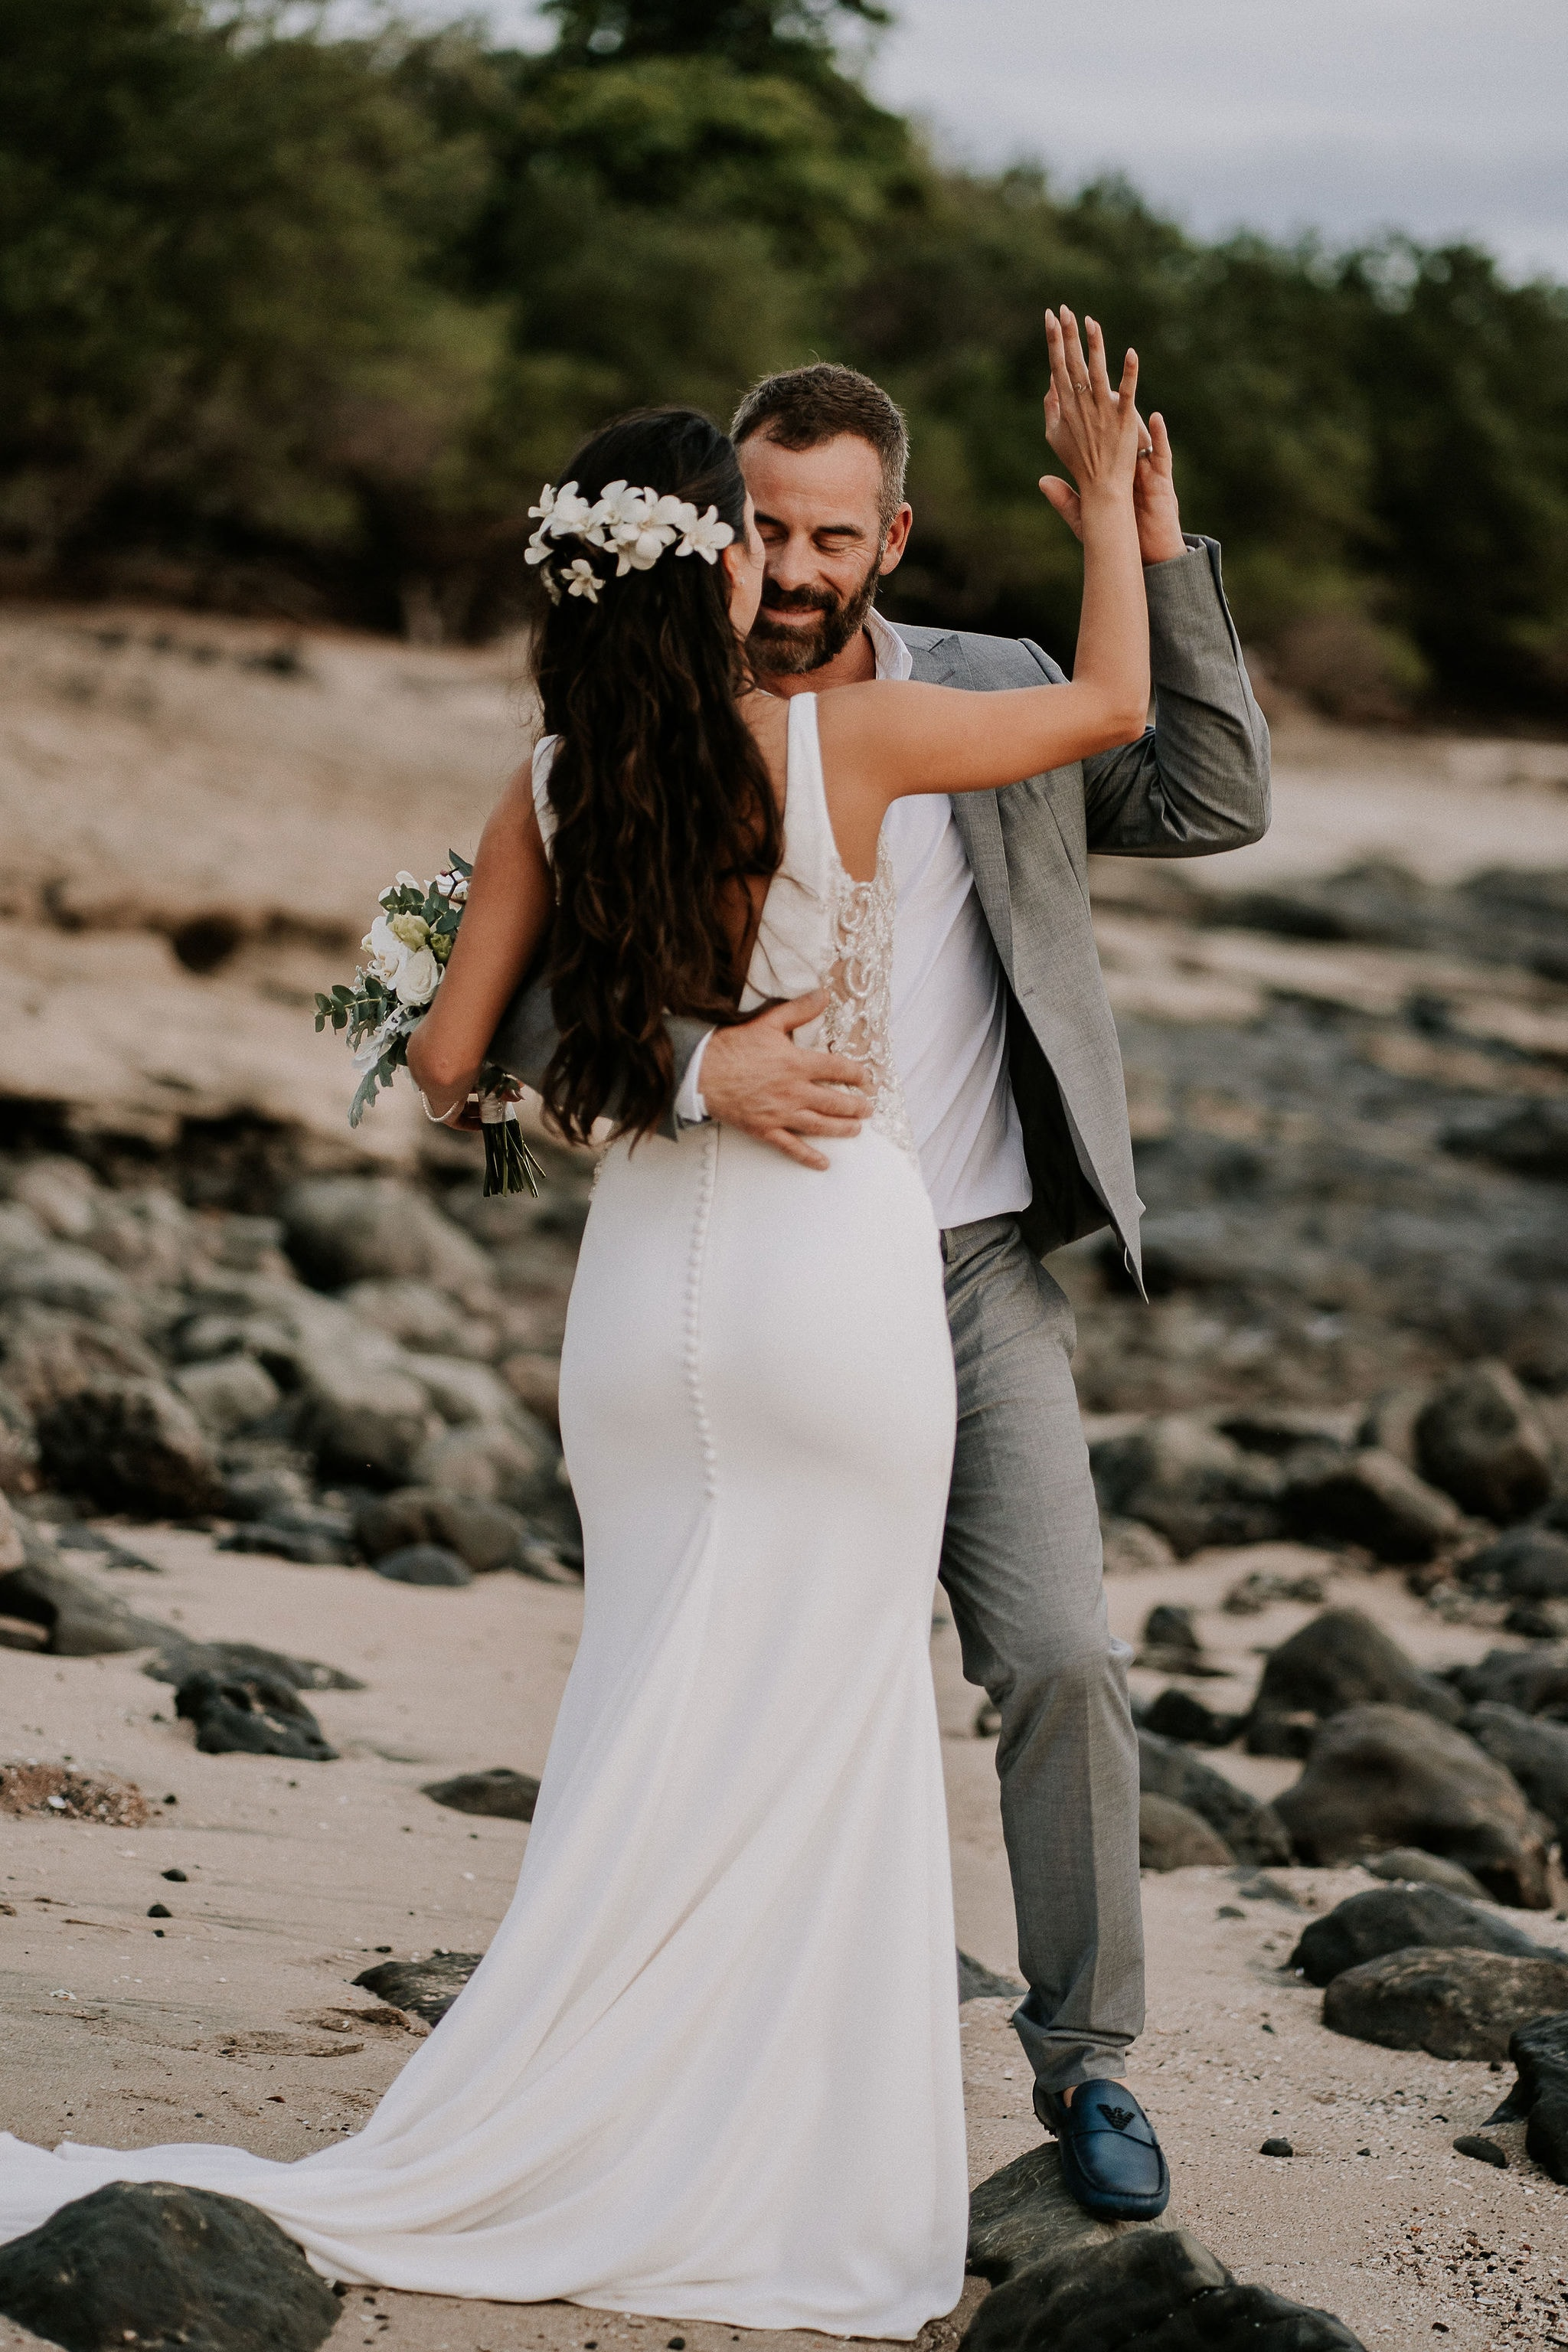 Nathaly & Scott's Nature Inspired Destination Wedding In Tamarindo, Costa Rica, Photography by Raw Shoots Photography for Luxury Destination Wedding network Adriana Weddings